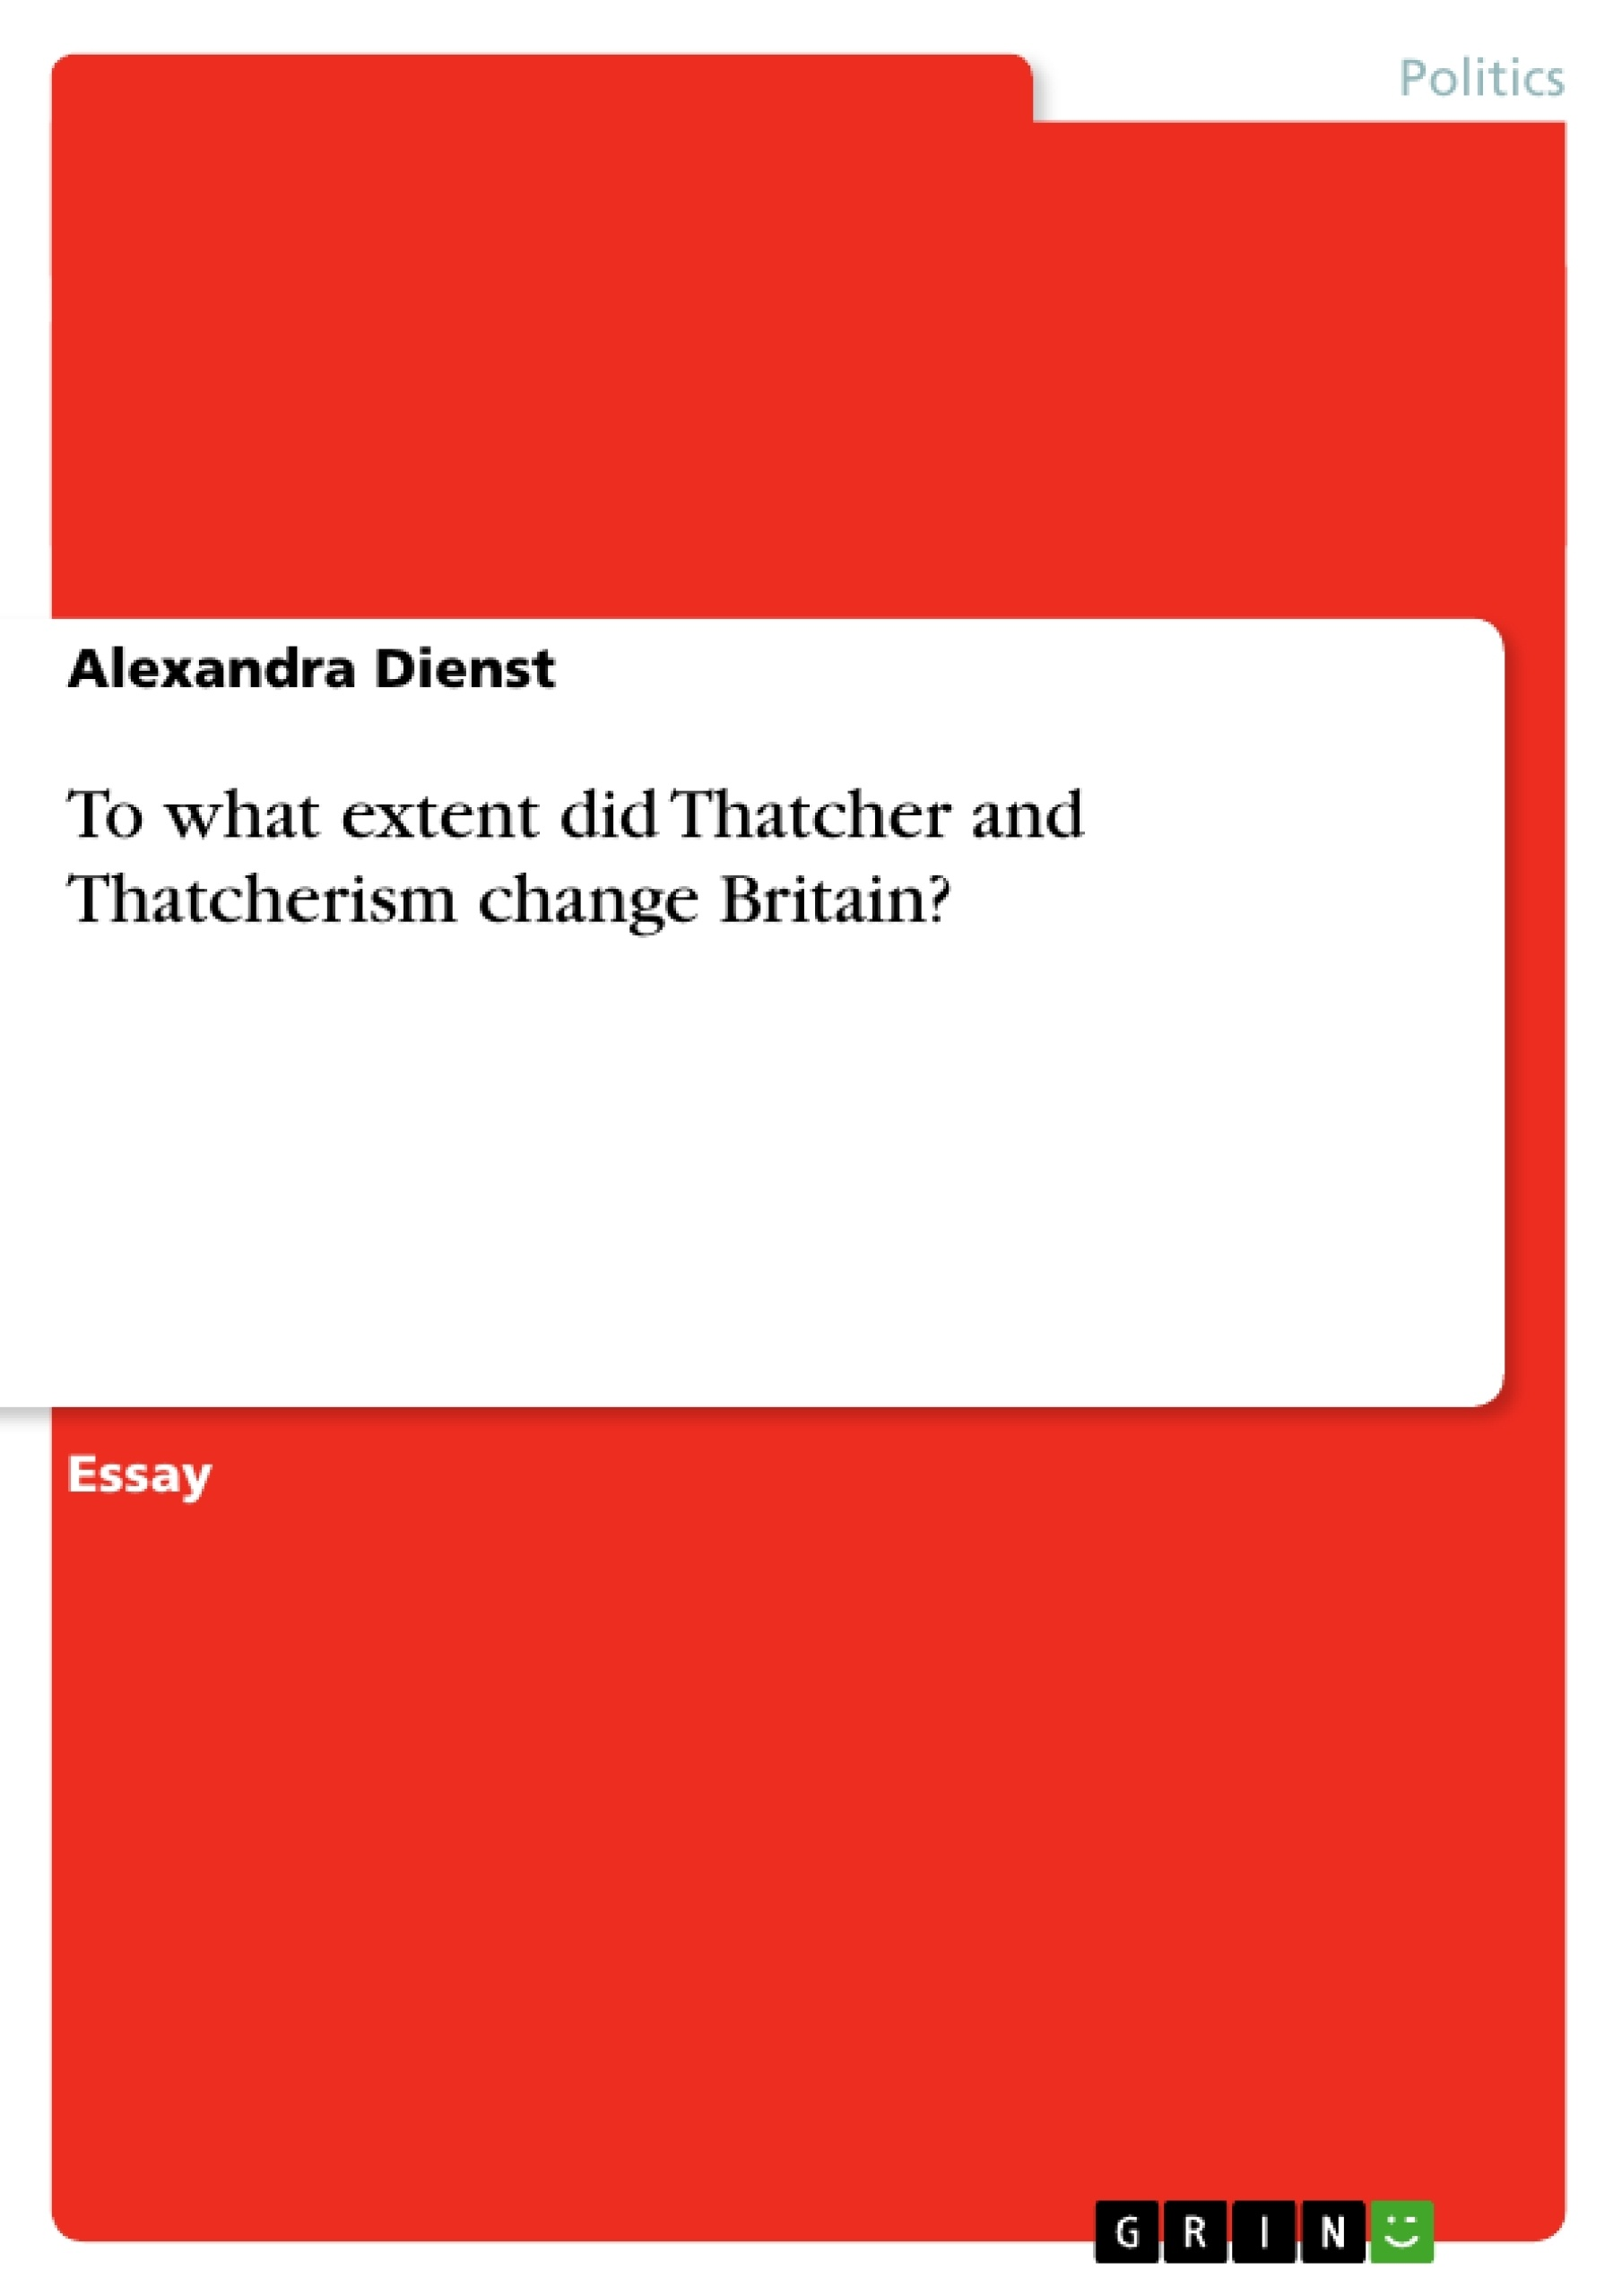 british politics thatcherism and reaganomics essay Thatcherism describes the conviction politics, economic, social policy and political style of the british conservative party politician margaret thatcher, who was leader of her party from 1975 to 1990.